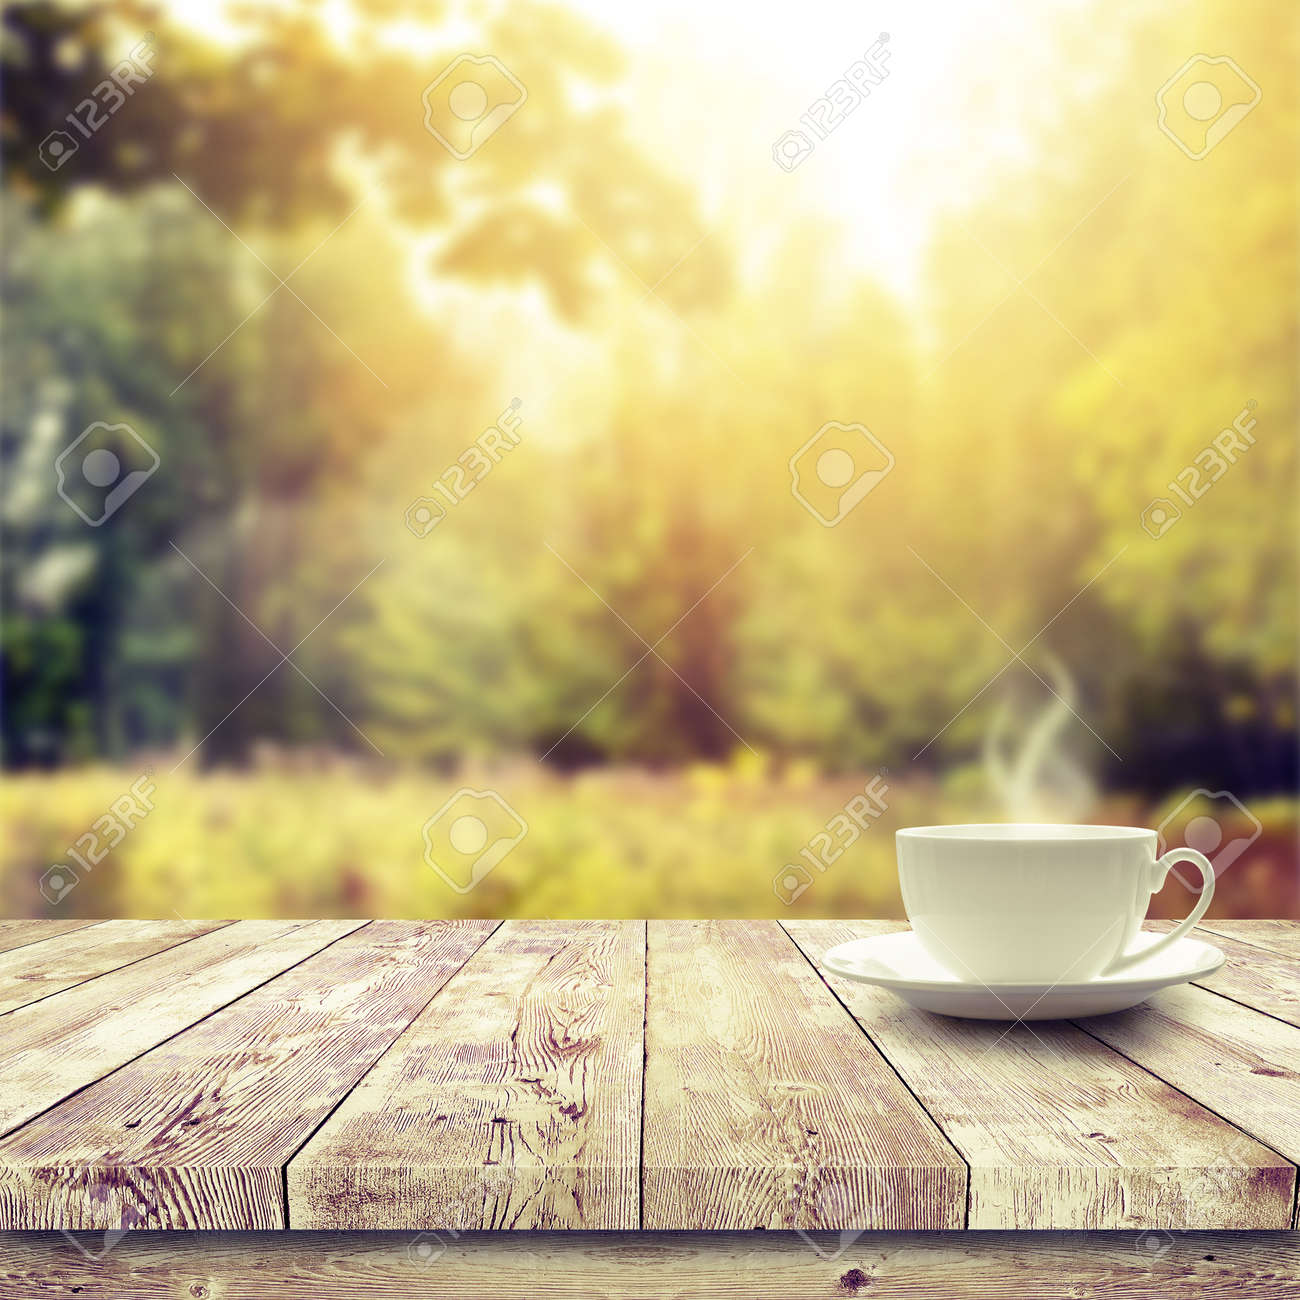 Plain wood table with hipster brick wall background stock photo - Cup With Hot Drink On Wood Table Over Forest Background